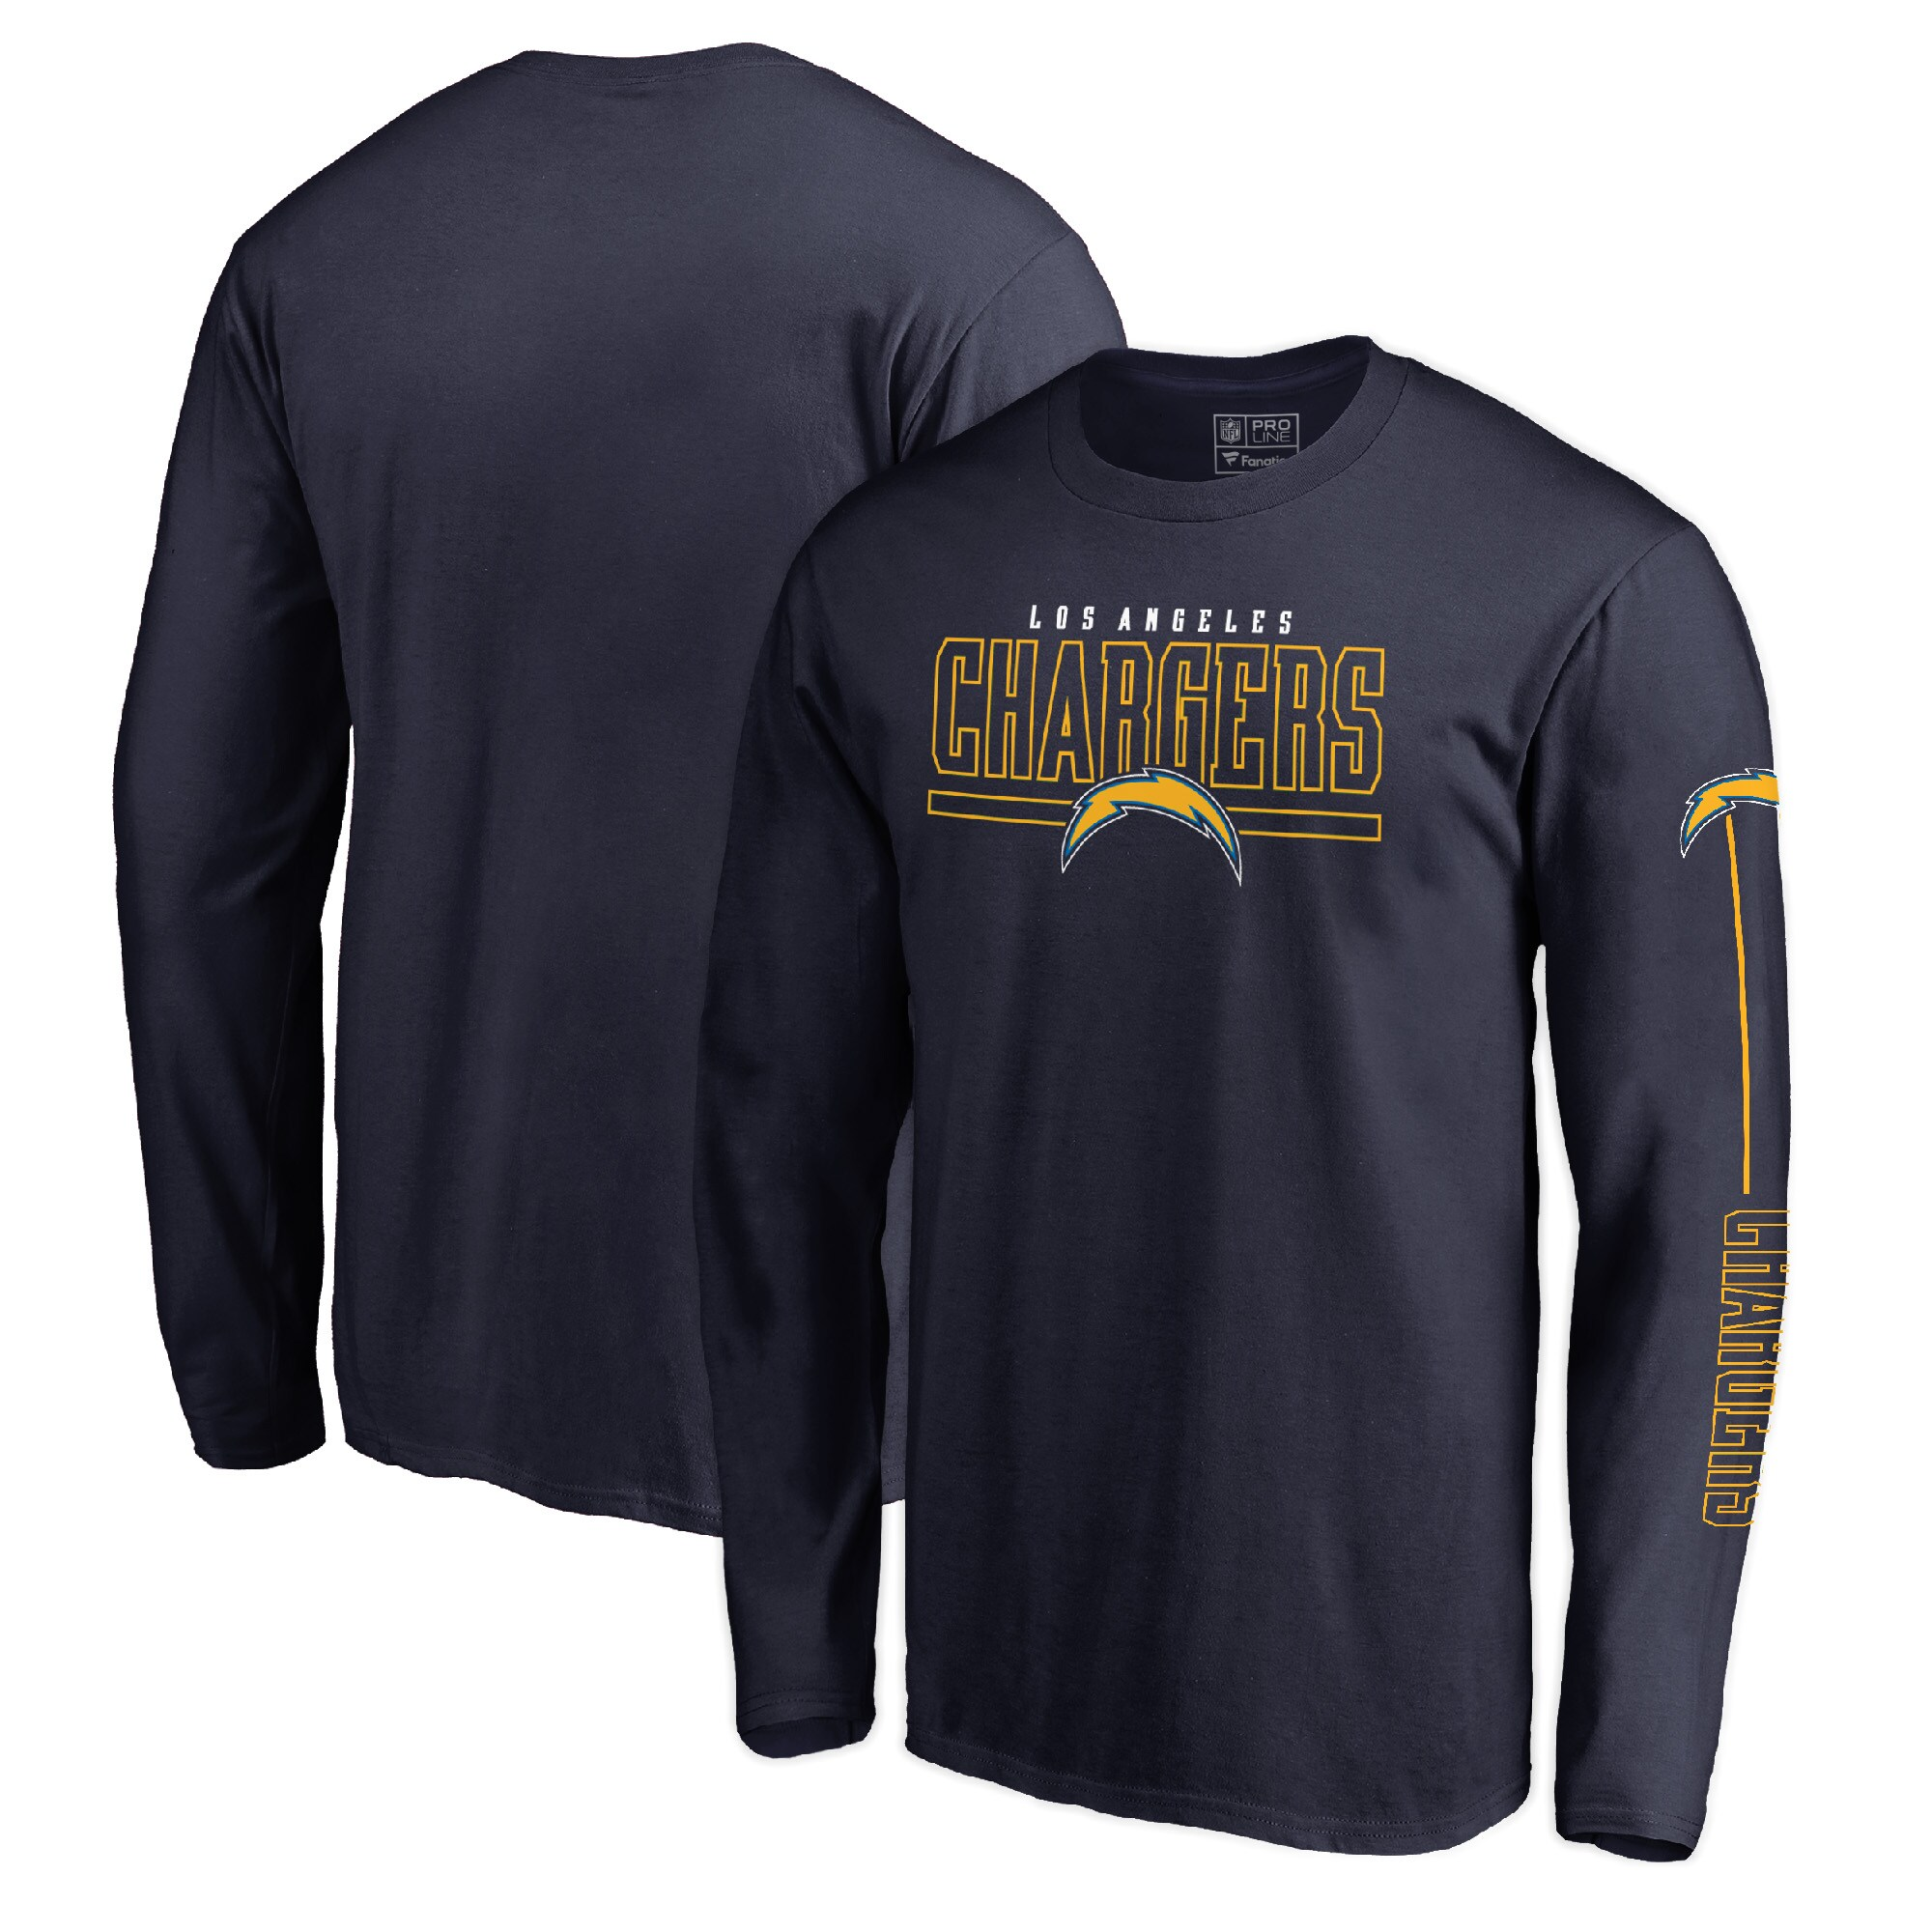 Los Angeles Chargers NFL Pro Line by Fanatics Branded Front Line Long Sleeve T-Shirt - Navy